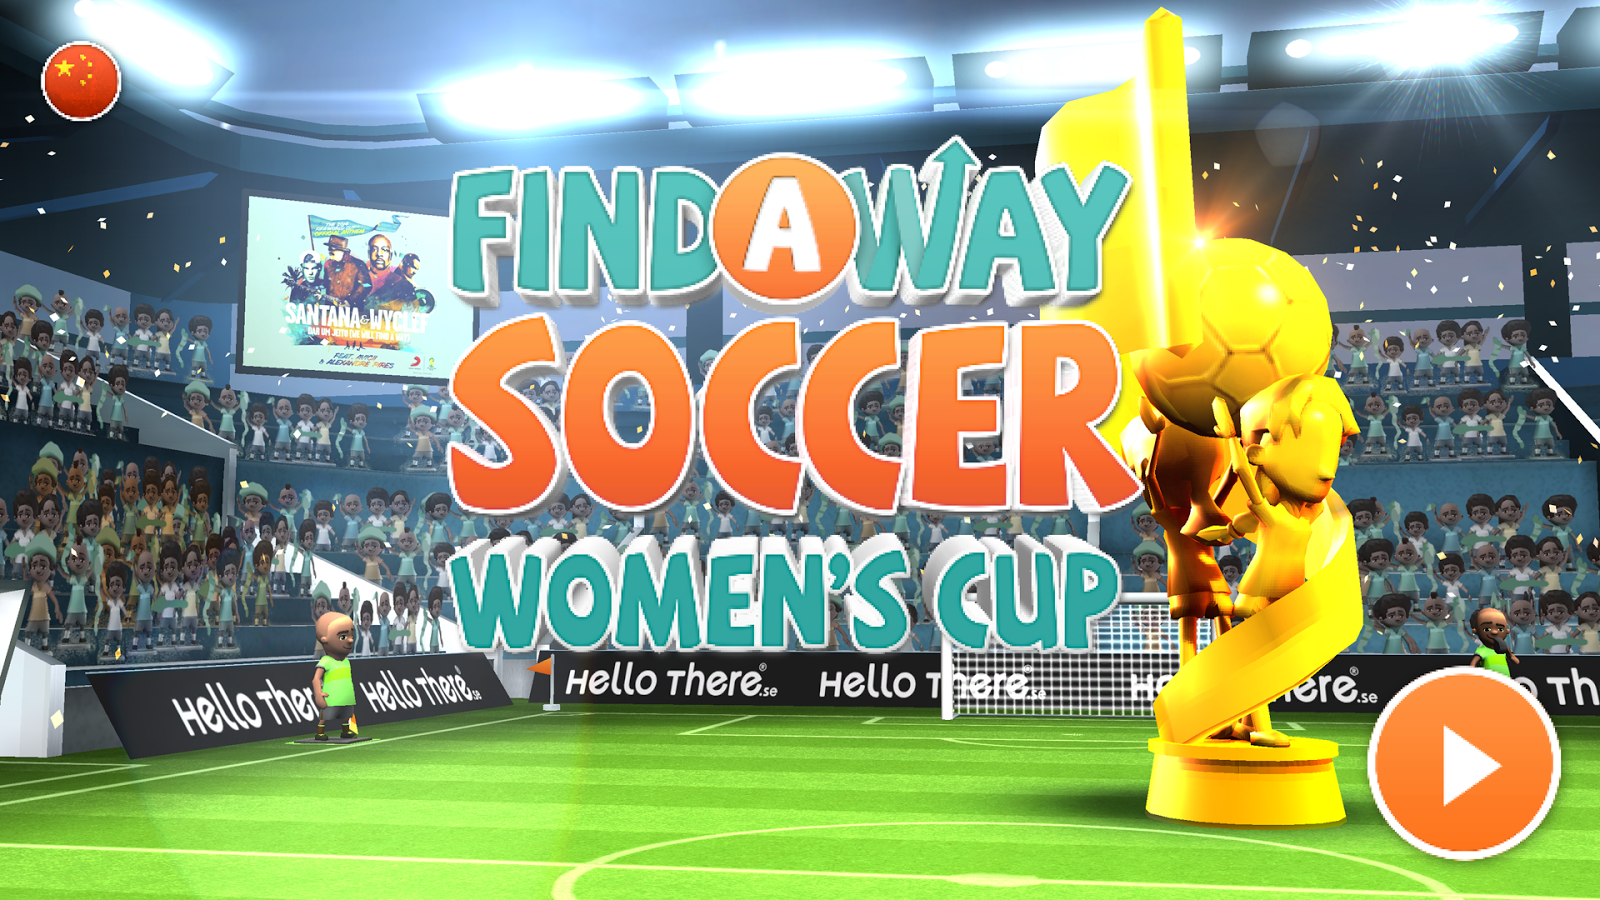 Find a Way Soccer: Women's Cup Screenshot 14